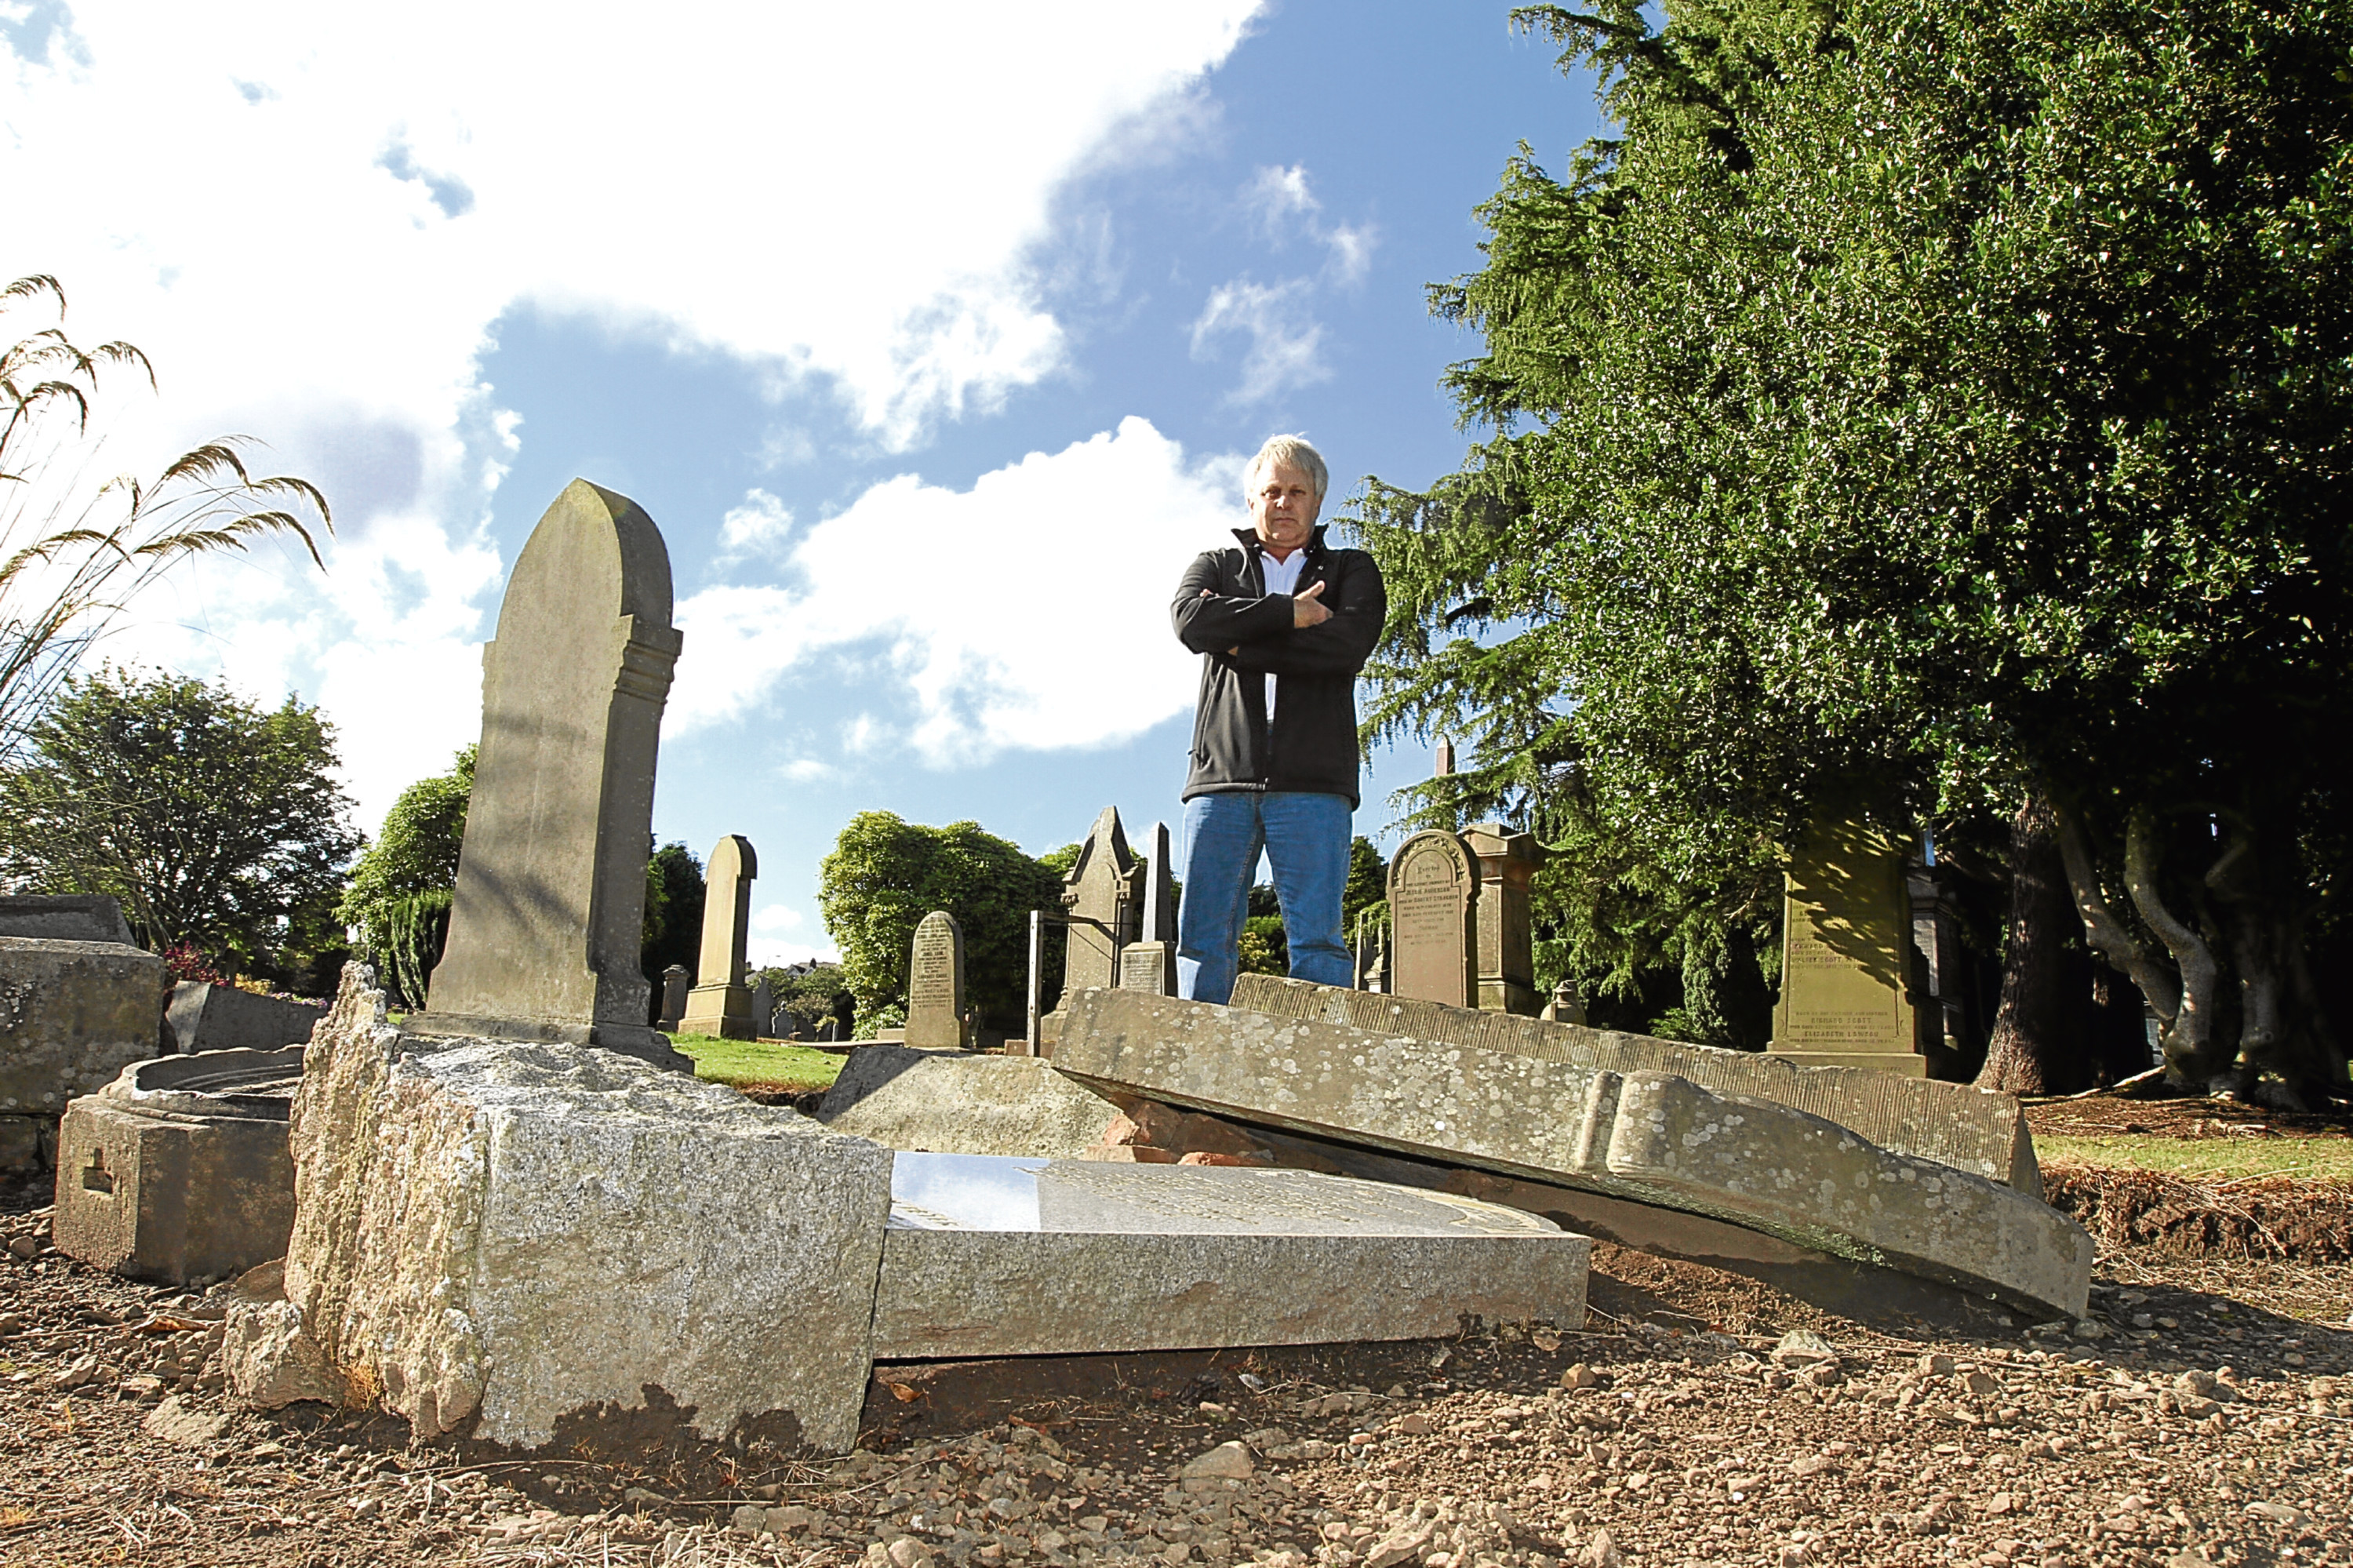 Paddy McArtney, from Maryfield, pictured in Eastern Cemetery which he has described as looking like a bomb site.